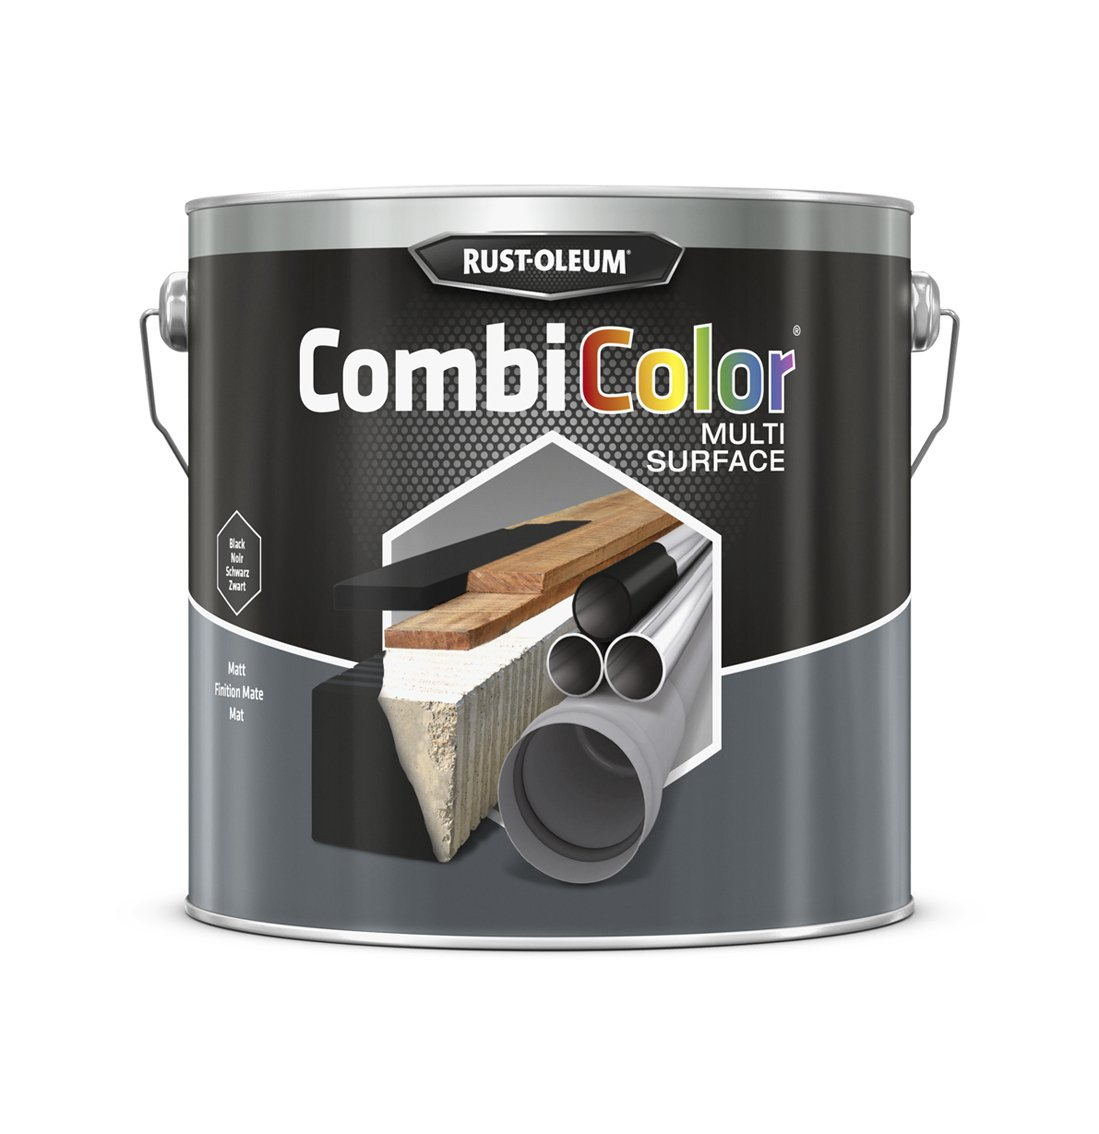 RUST-OLEUM 7378MS.2.5 Combicolor Multi-Surface, One Paint, Many Surfaces, Matt black